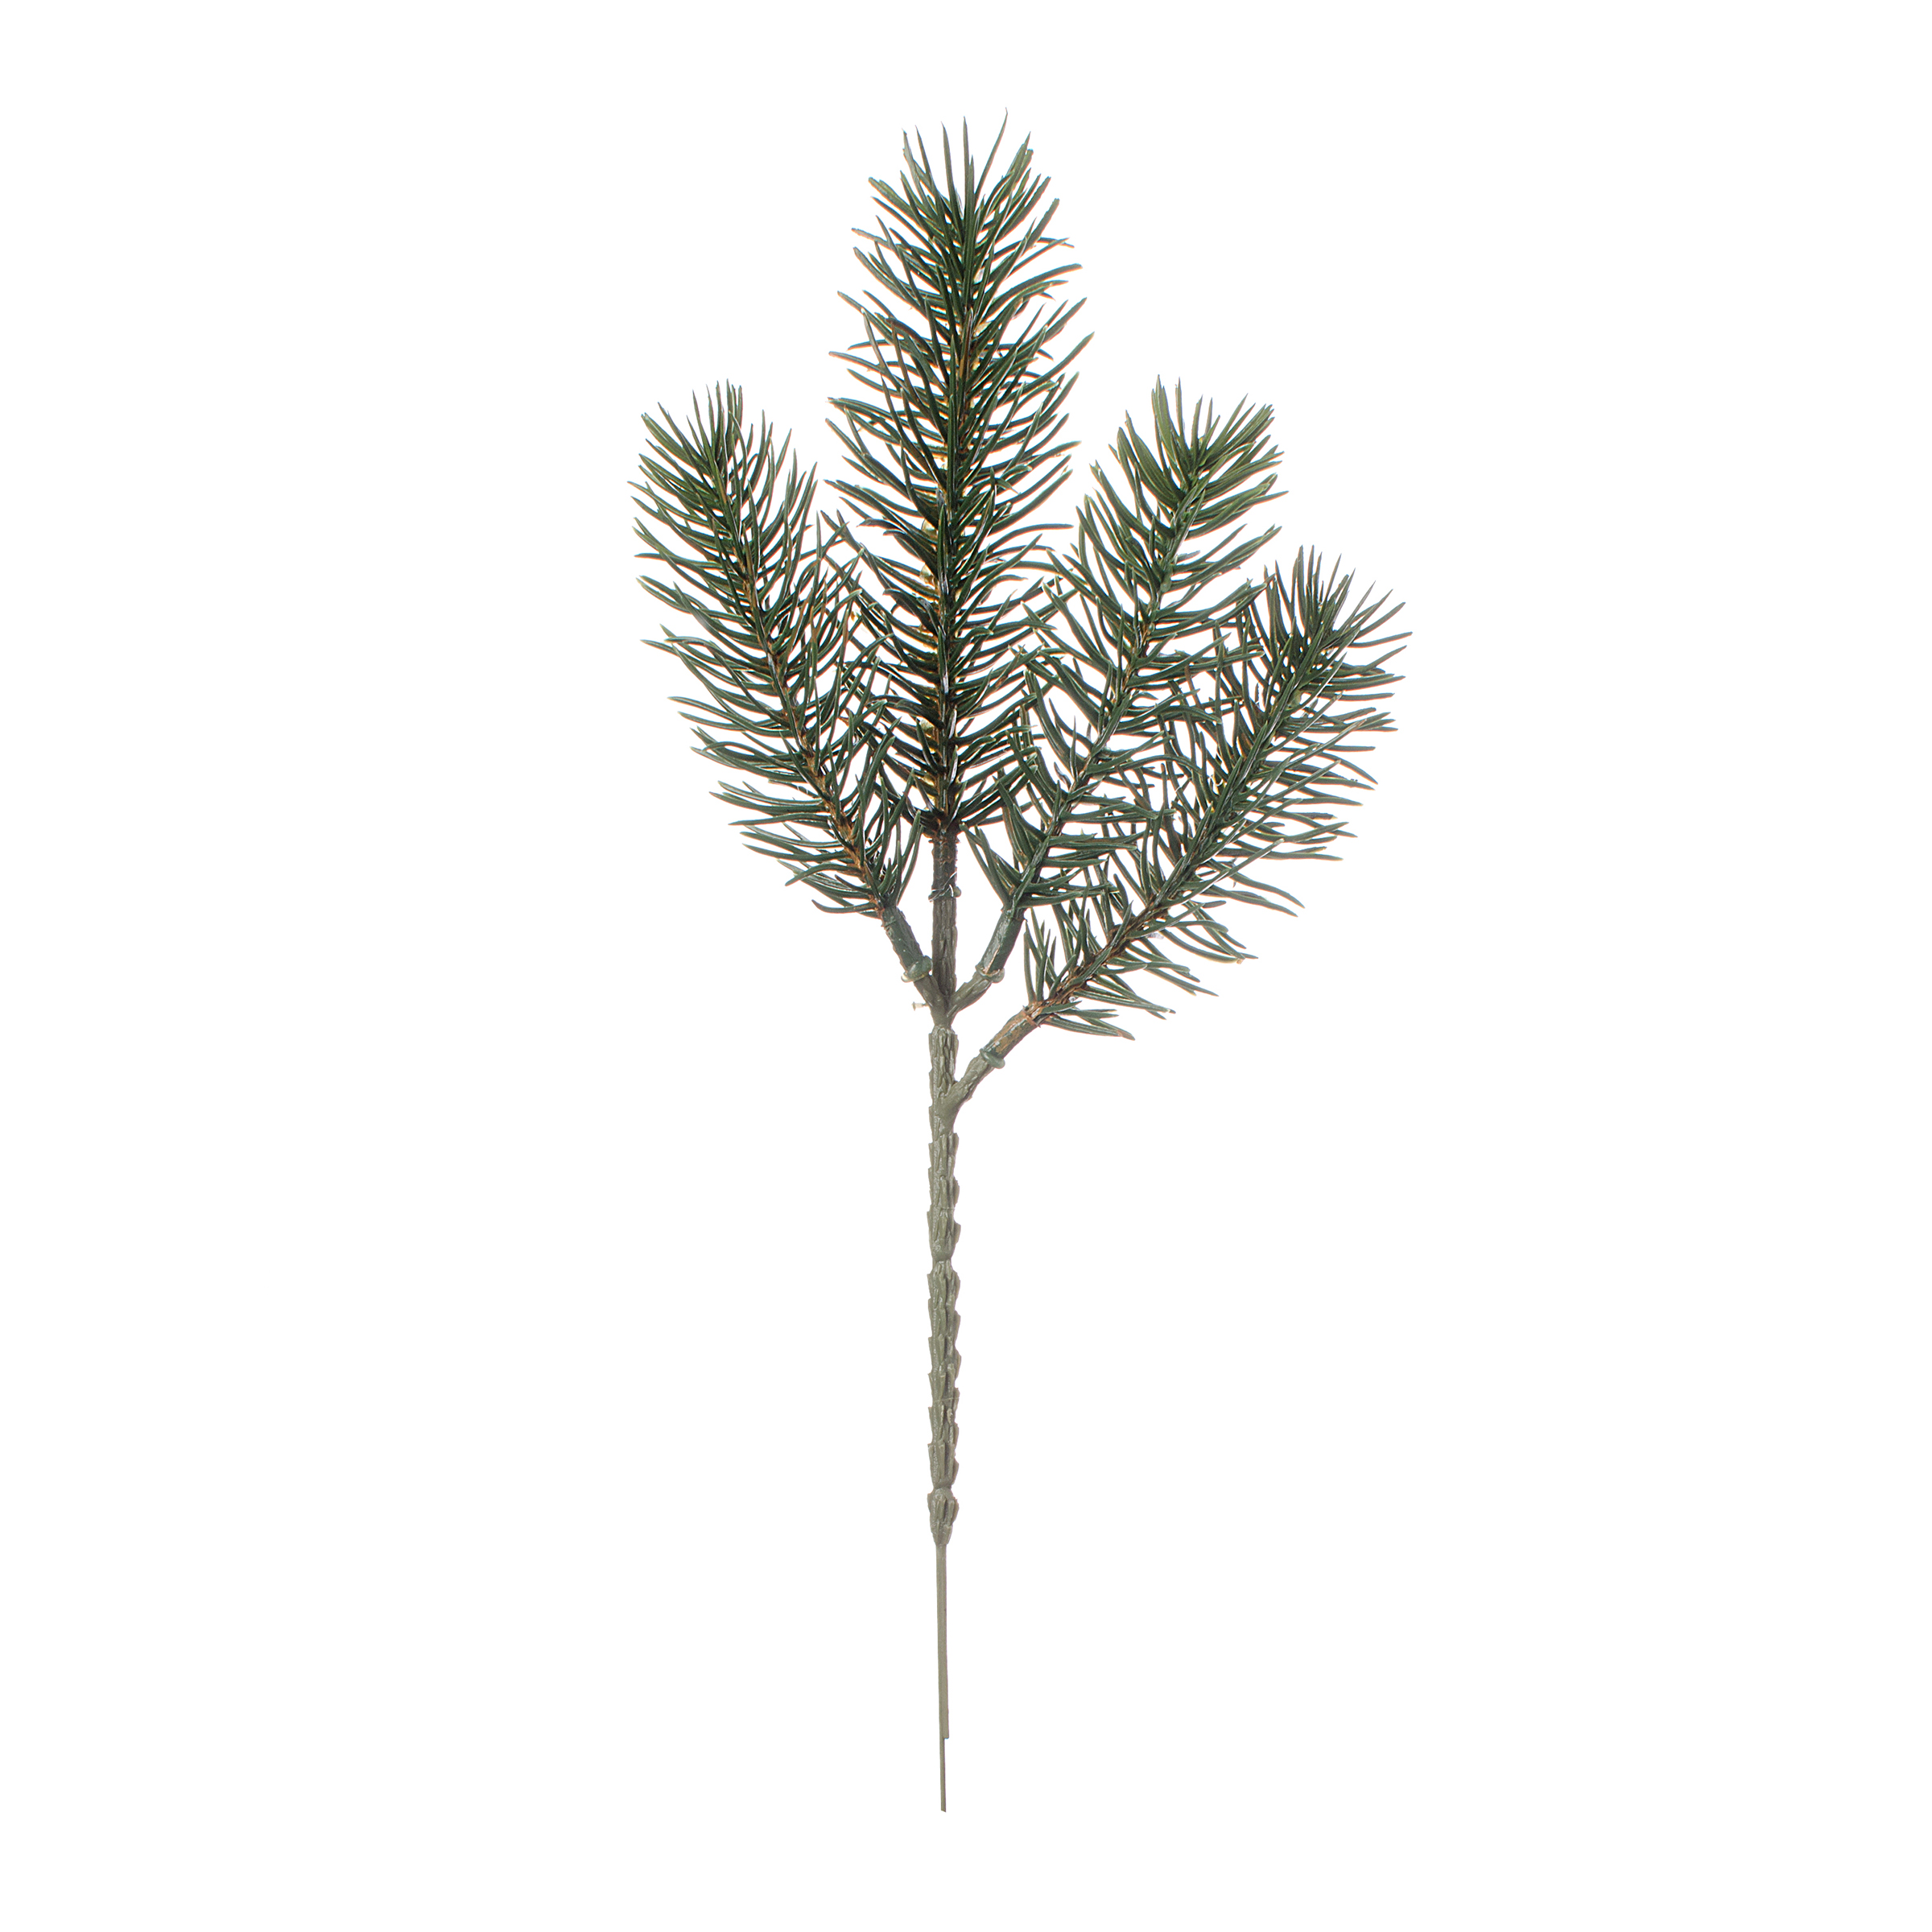 Darice Artificial Pine Branches Pick 11 Inches